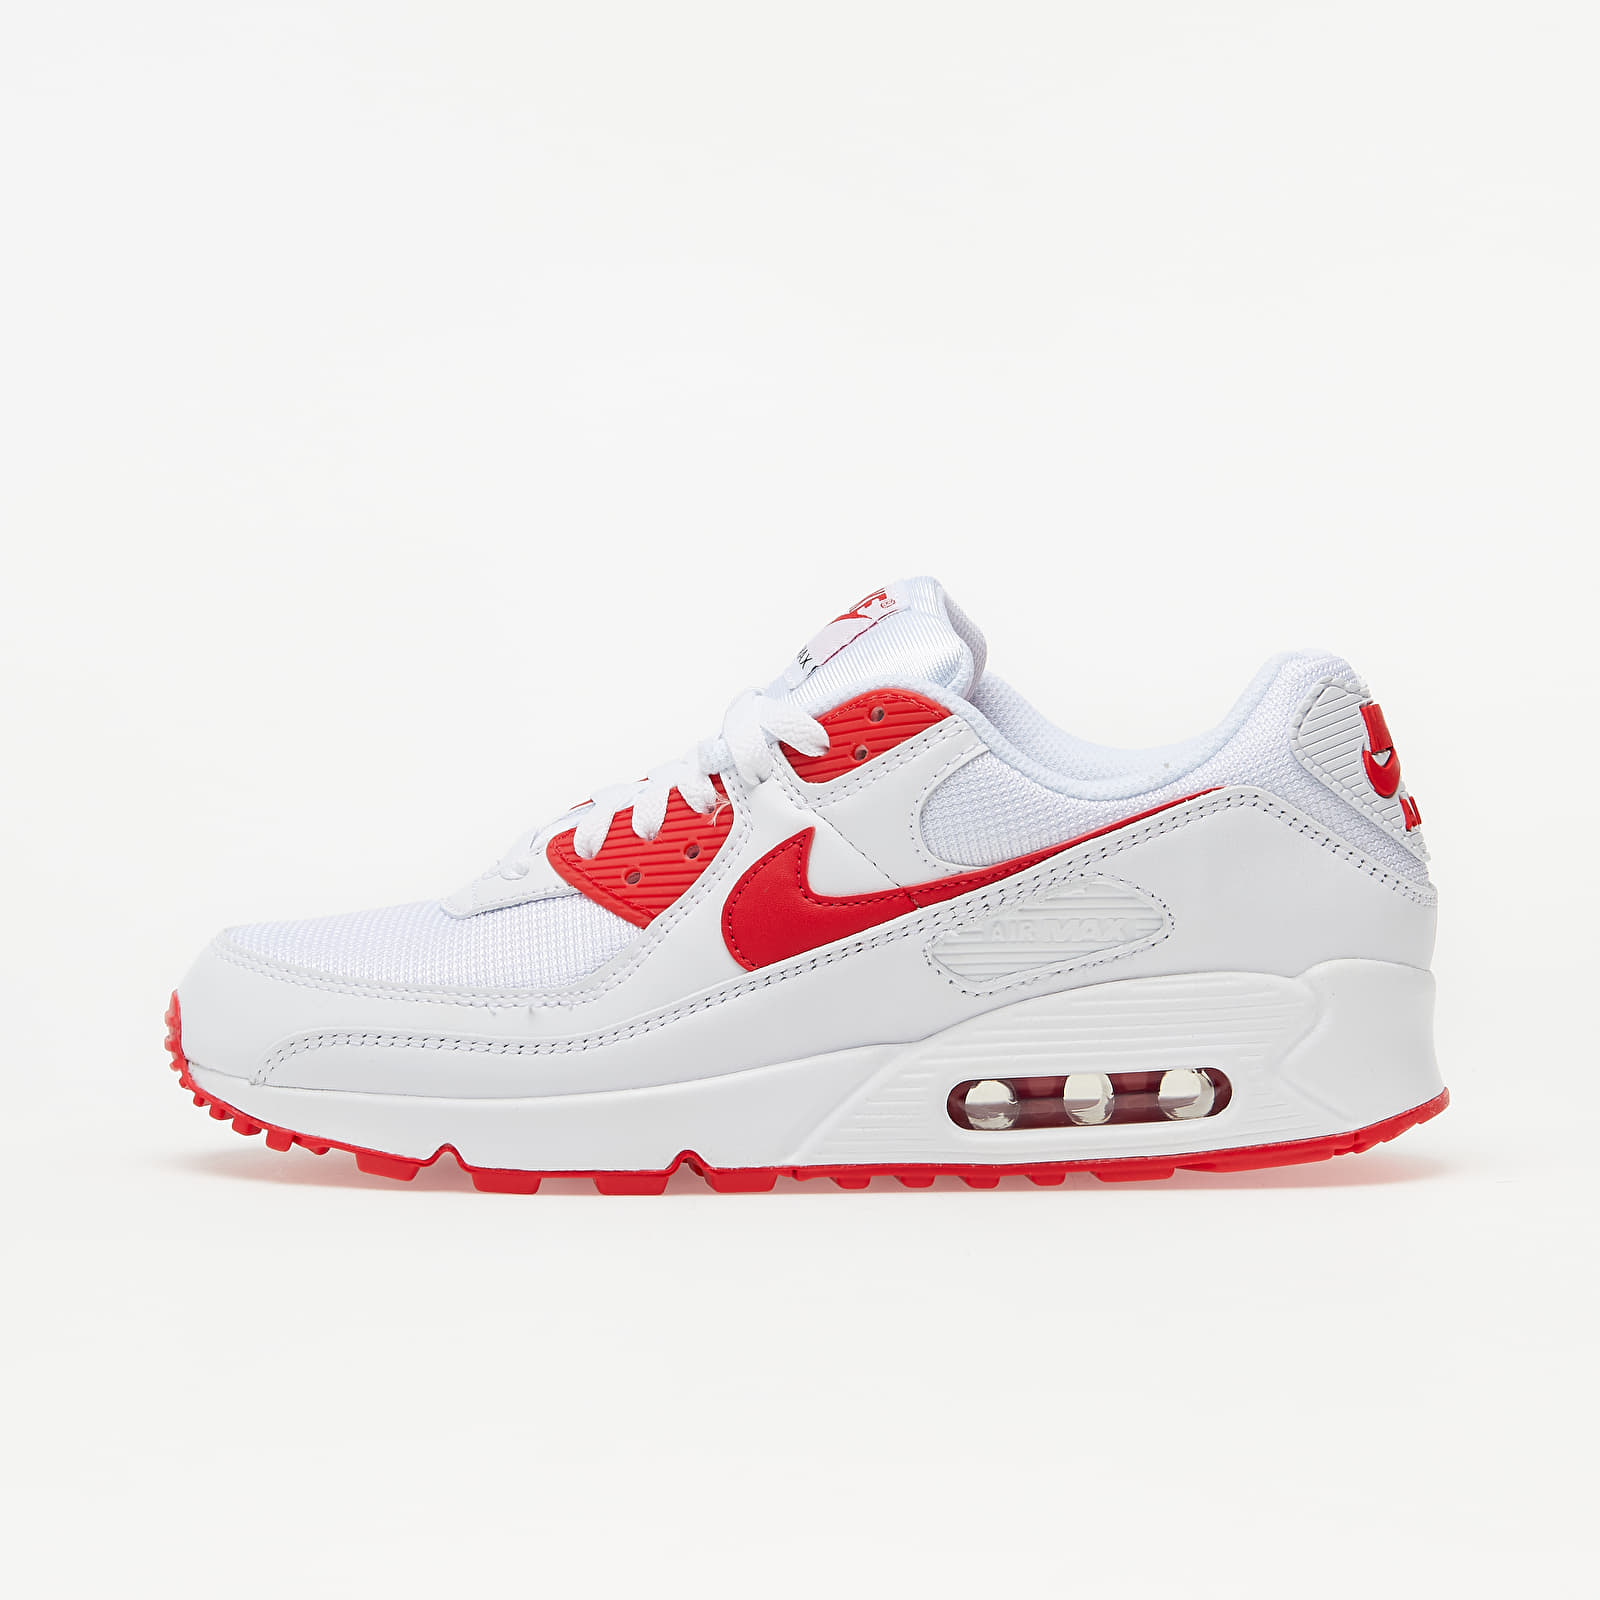 Nike Air Max 90 White/ Hyper Red-Black EUR 42.5